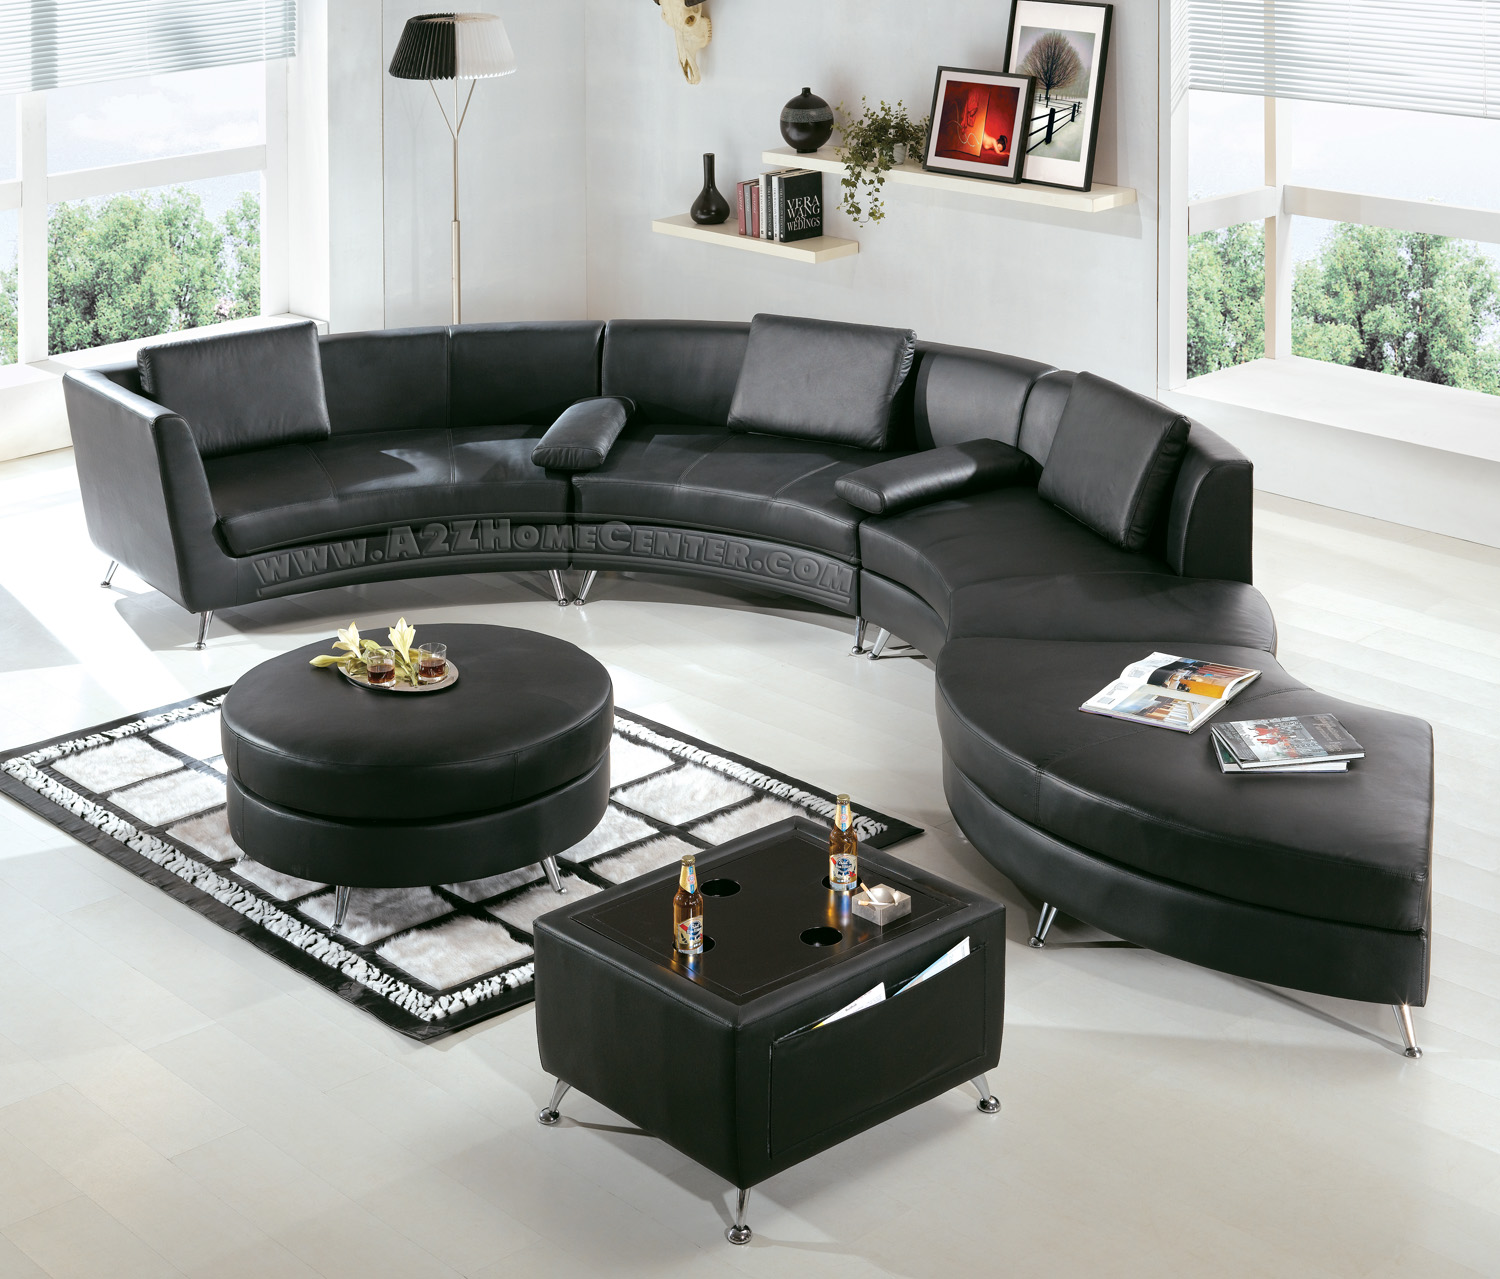 trend home interior design 2011: Modern Furniture Sofa Variety Ideas